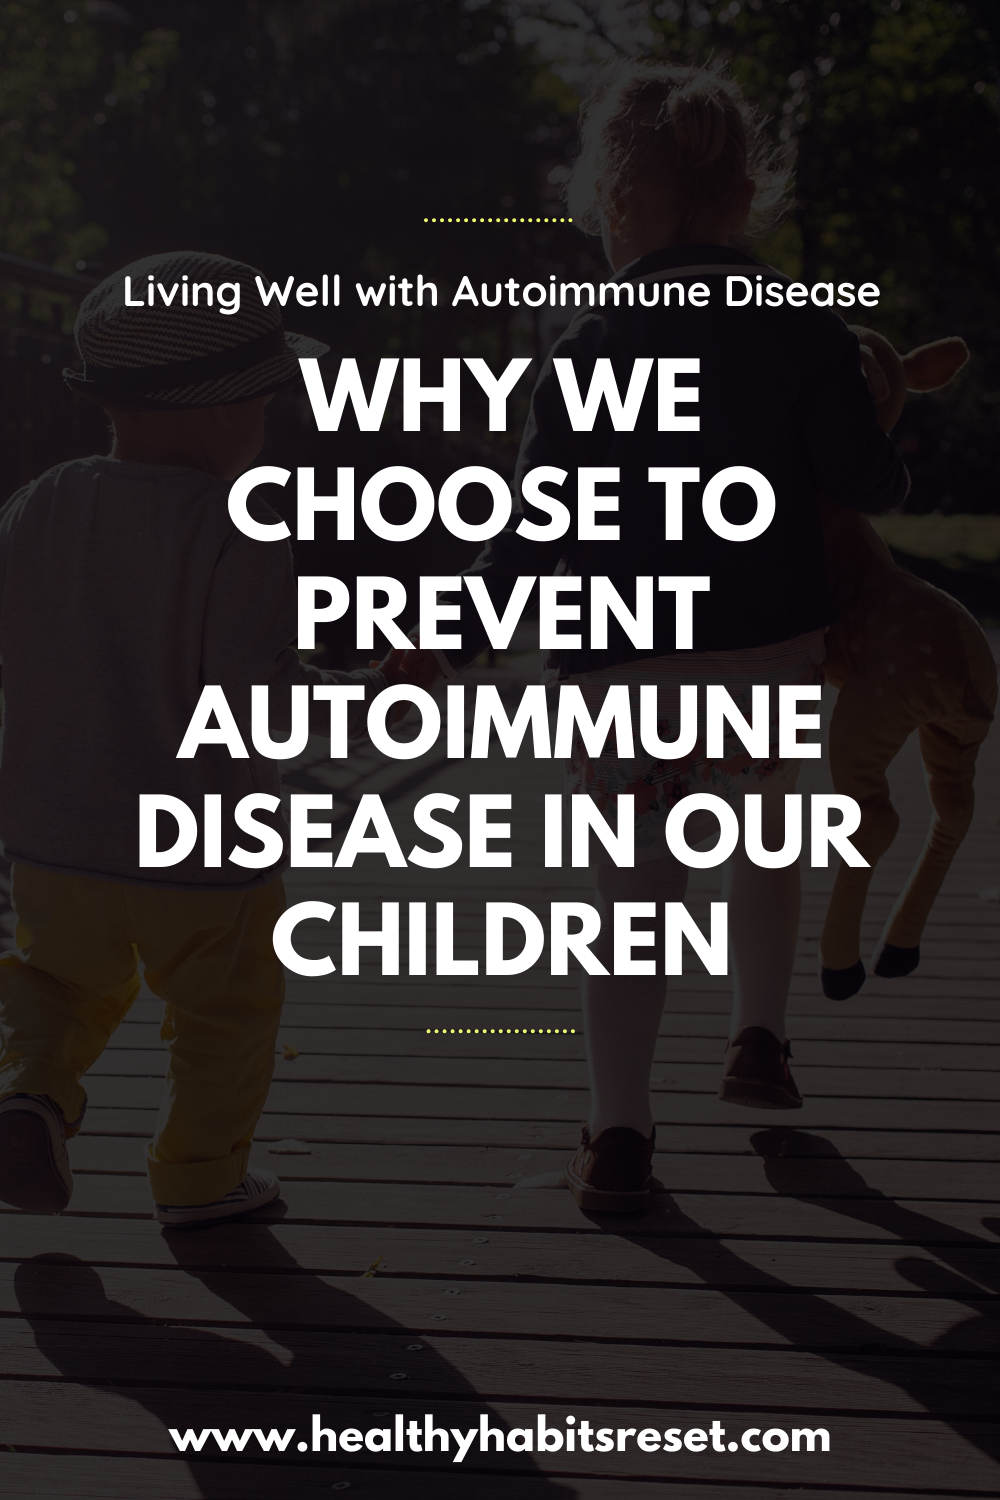 Why We Choose to Prevent Autoimmune Disease in Our ...